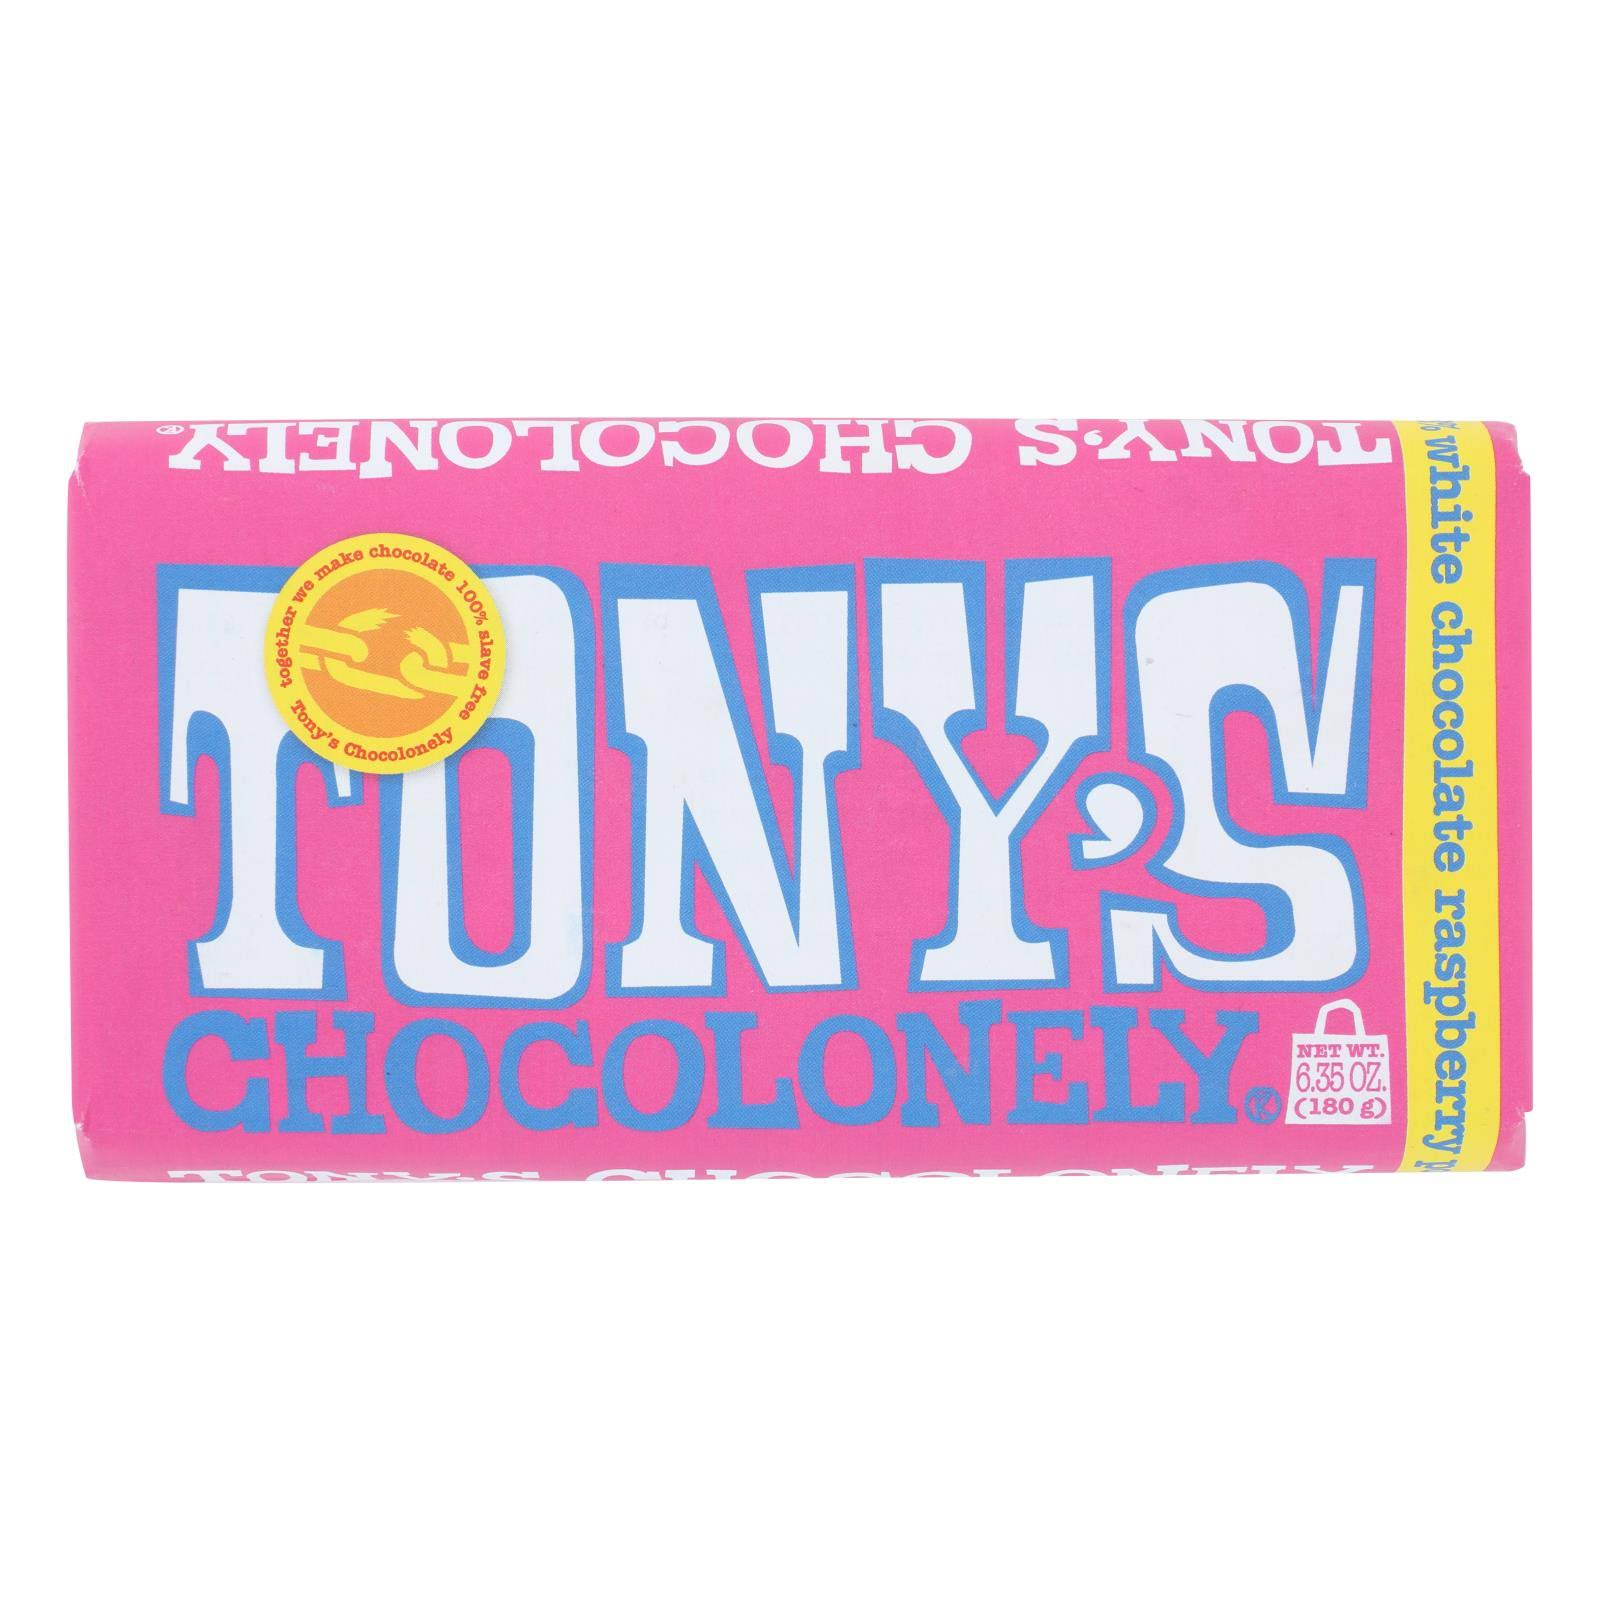 Tony's Chocolonely White Chocolate - with Raspberry, 180g